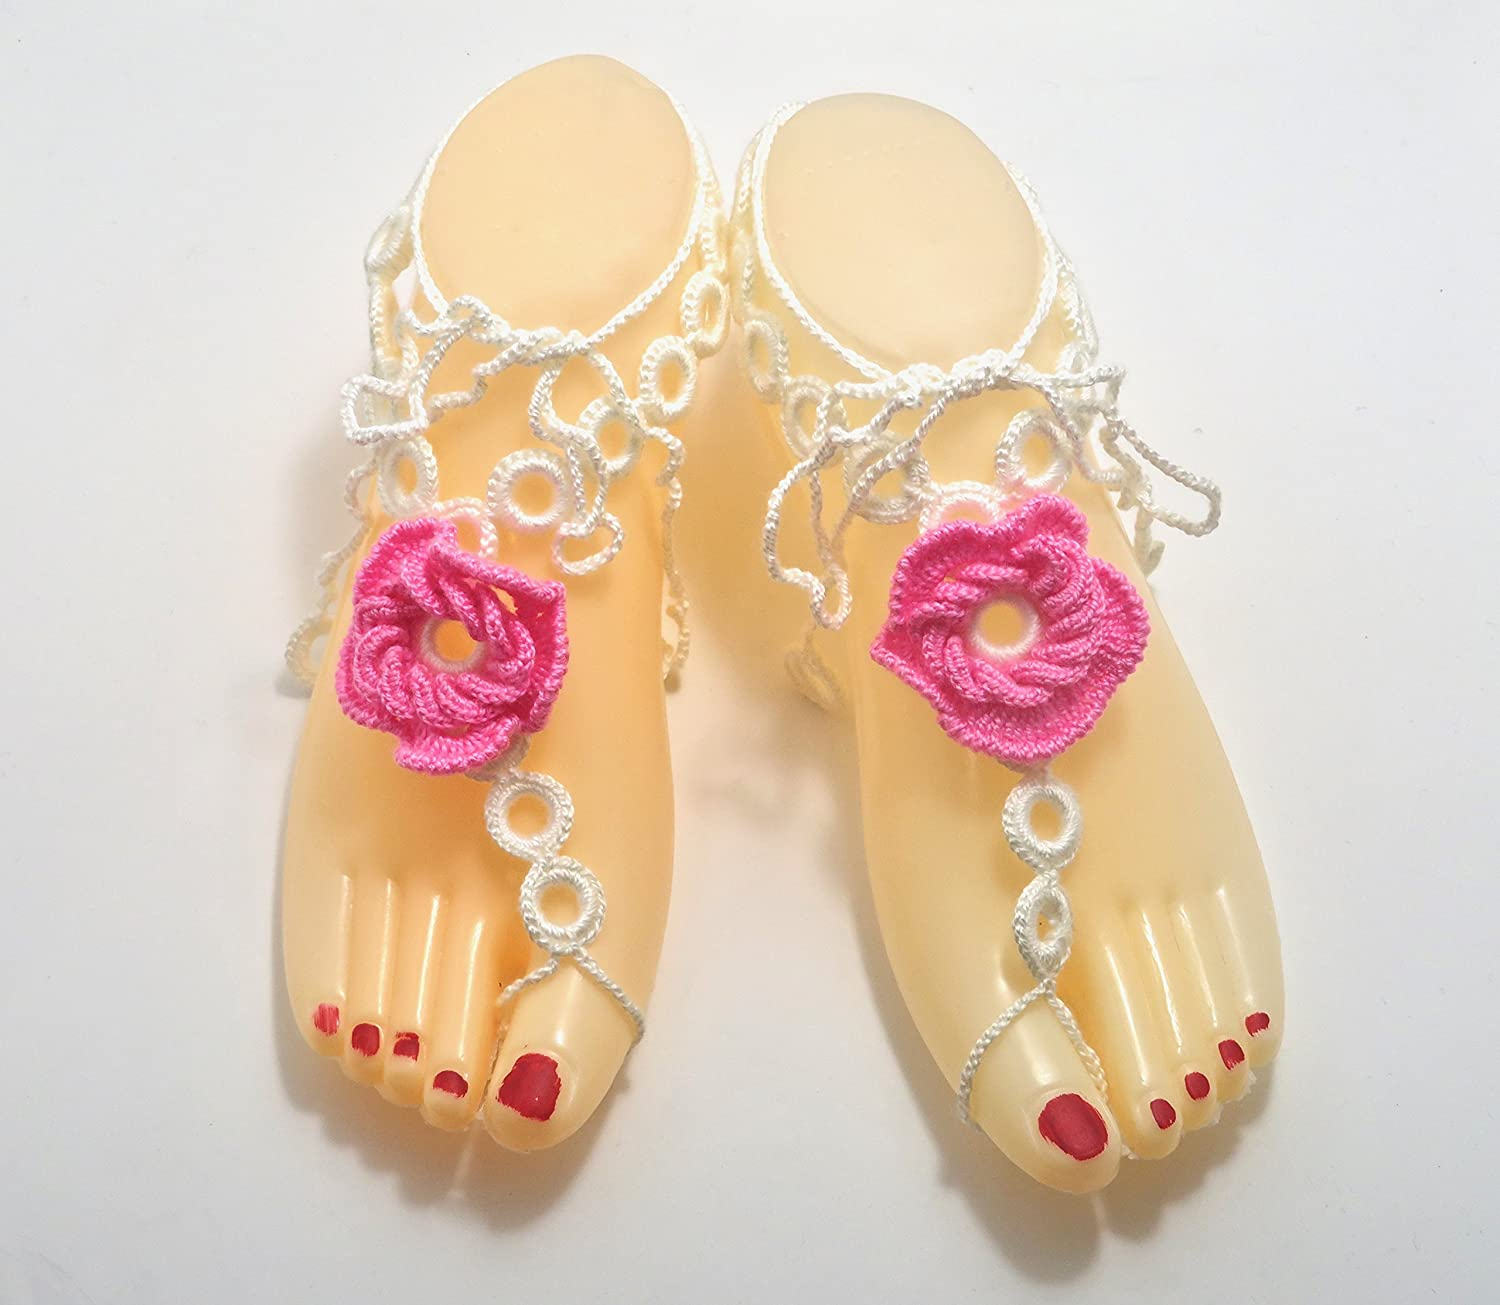 Handmade Bare-Foot Sales of SALE items quality assurance from new works Beach Sandals